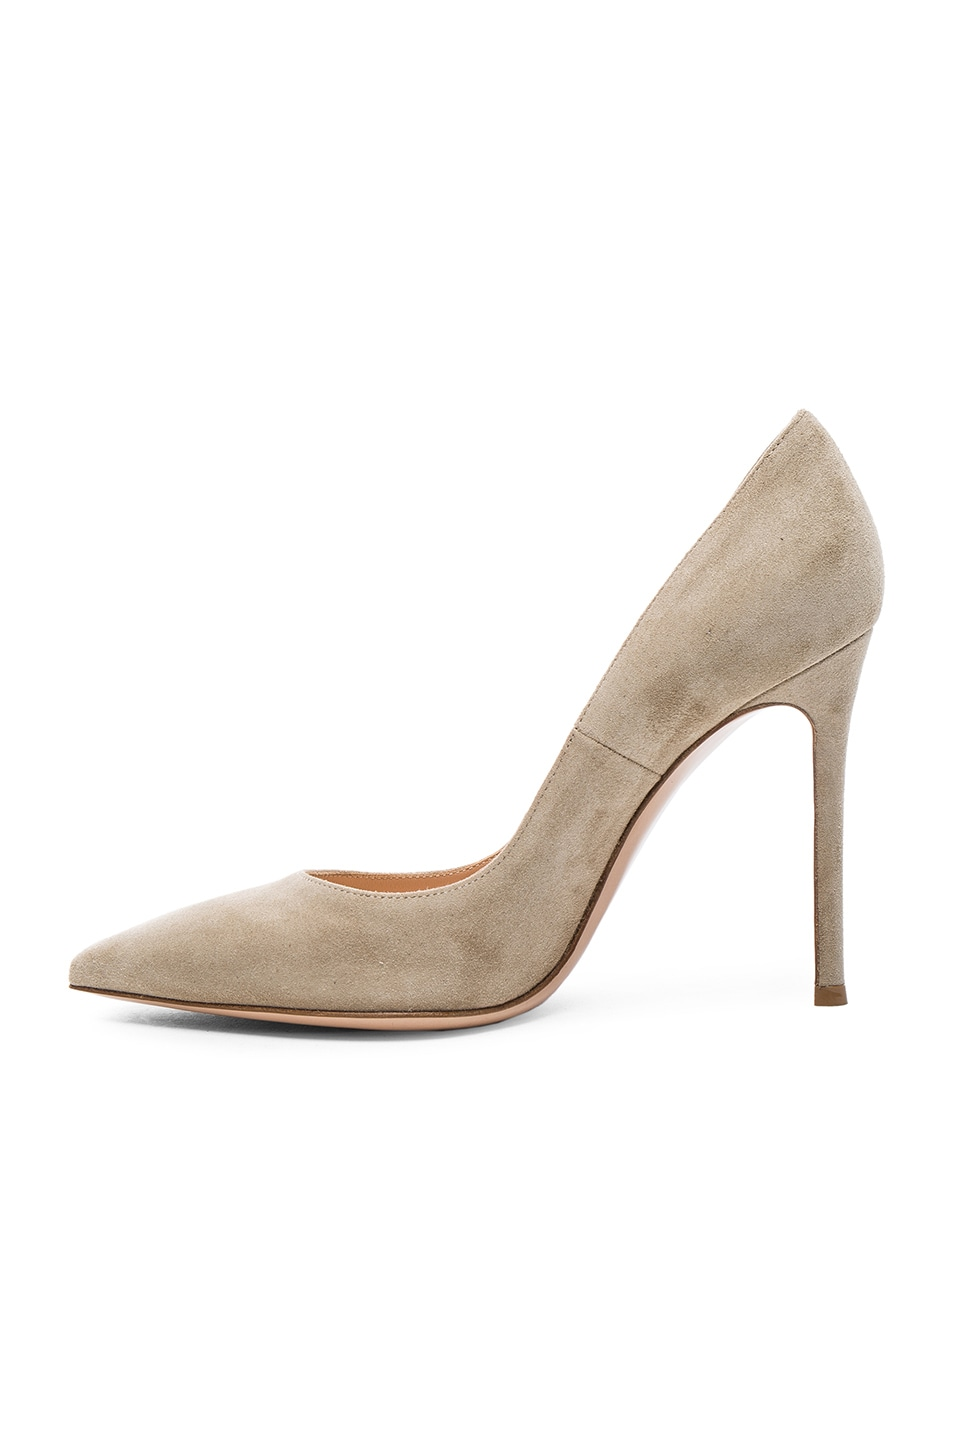 Image 5 of Gianvito Rossi Suede Gianvito Heels in Camel